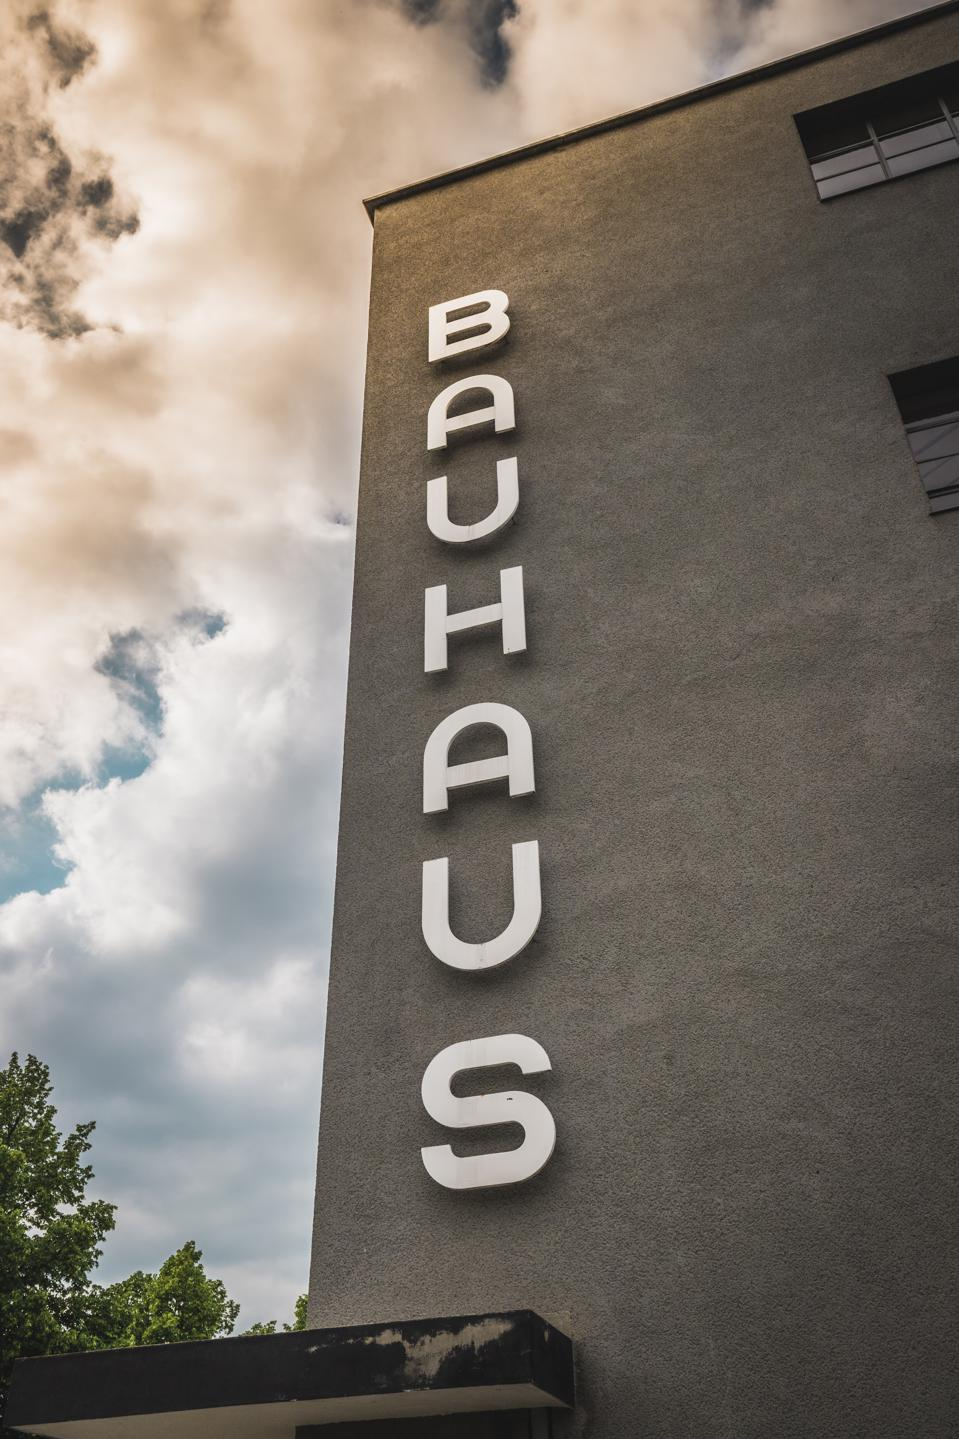 The Bauhaus art school iconic building designed by architect Walter Gropius in 1925